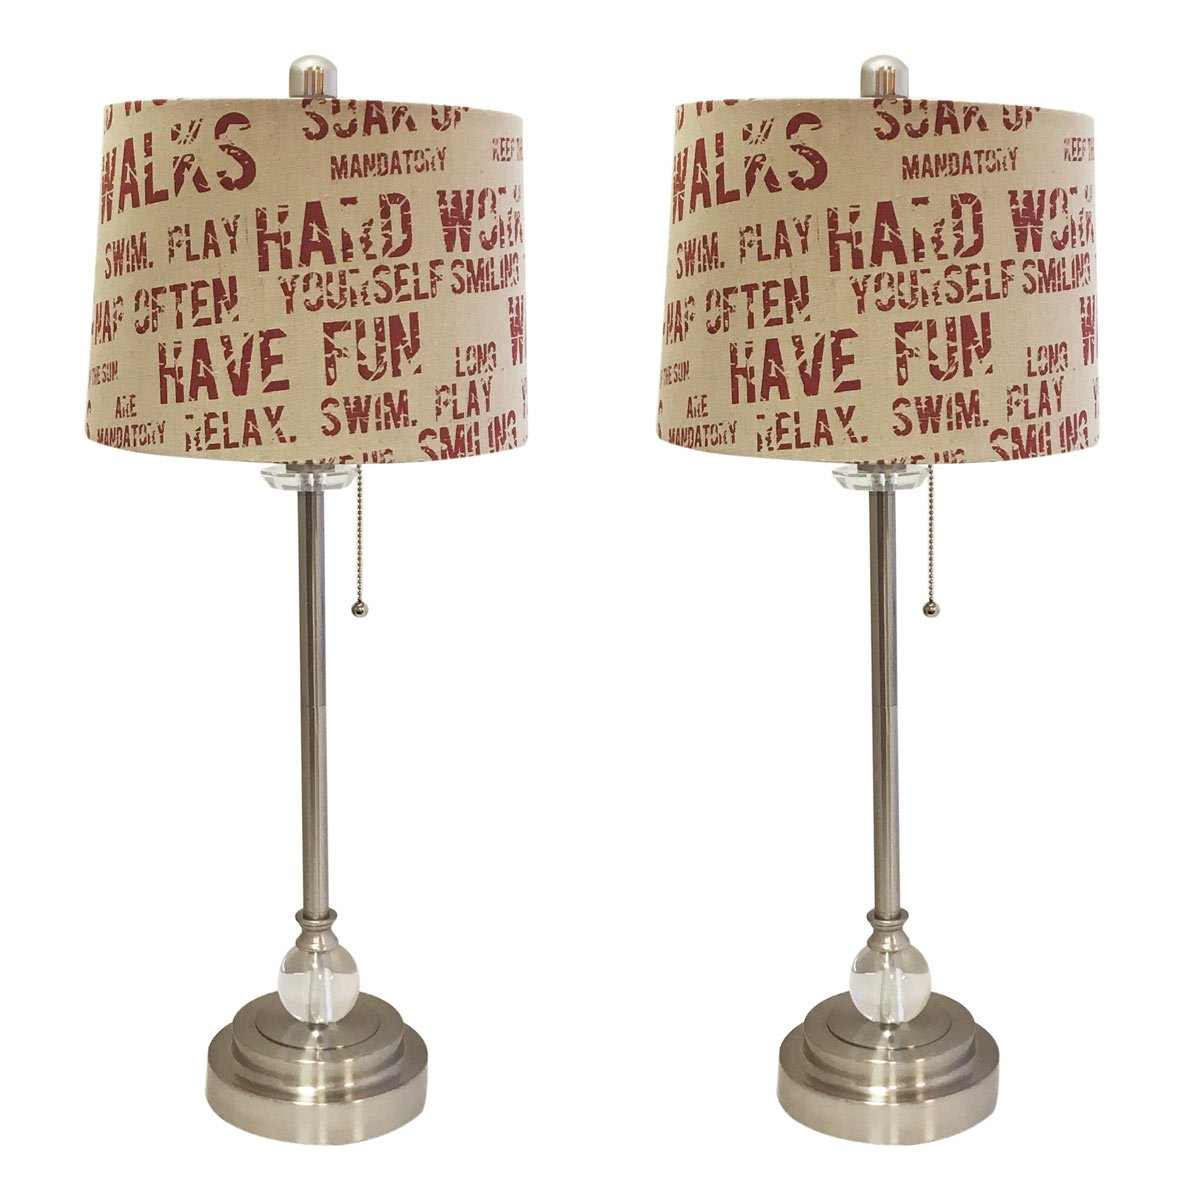 Royal Designs 28'' Crystal and Brushed Nickel Lamp with Cream and Red Relaxing Phrase Print Drum Hardback Lamp Shade, Set of 2 by Royal Designs, Inc